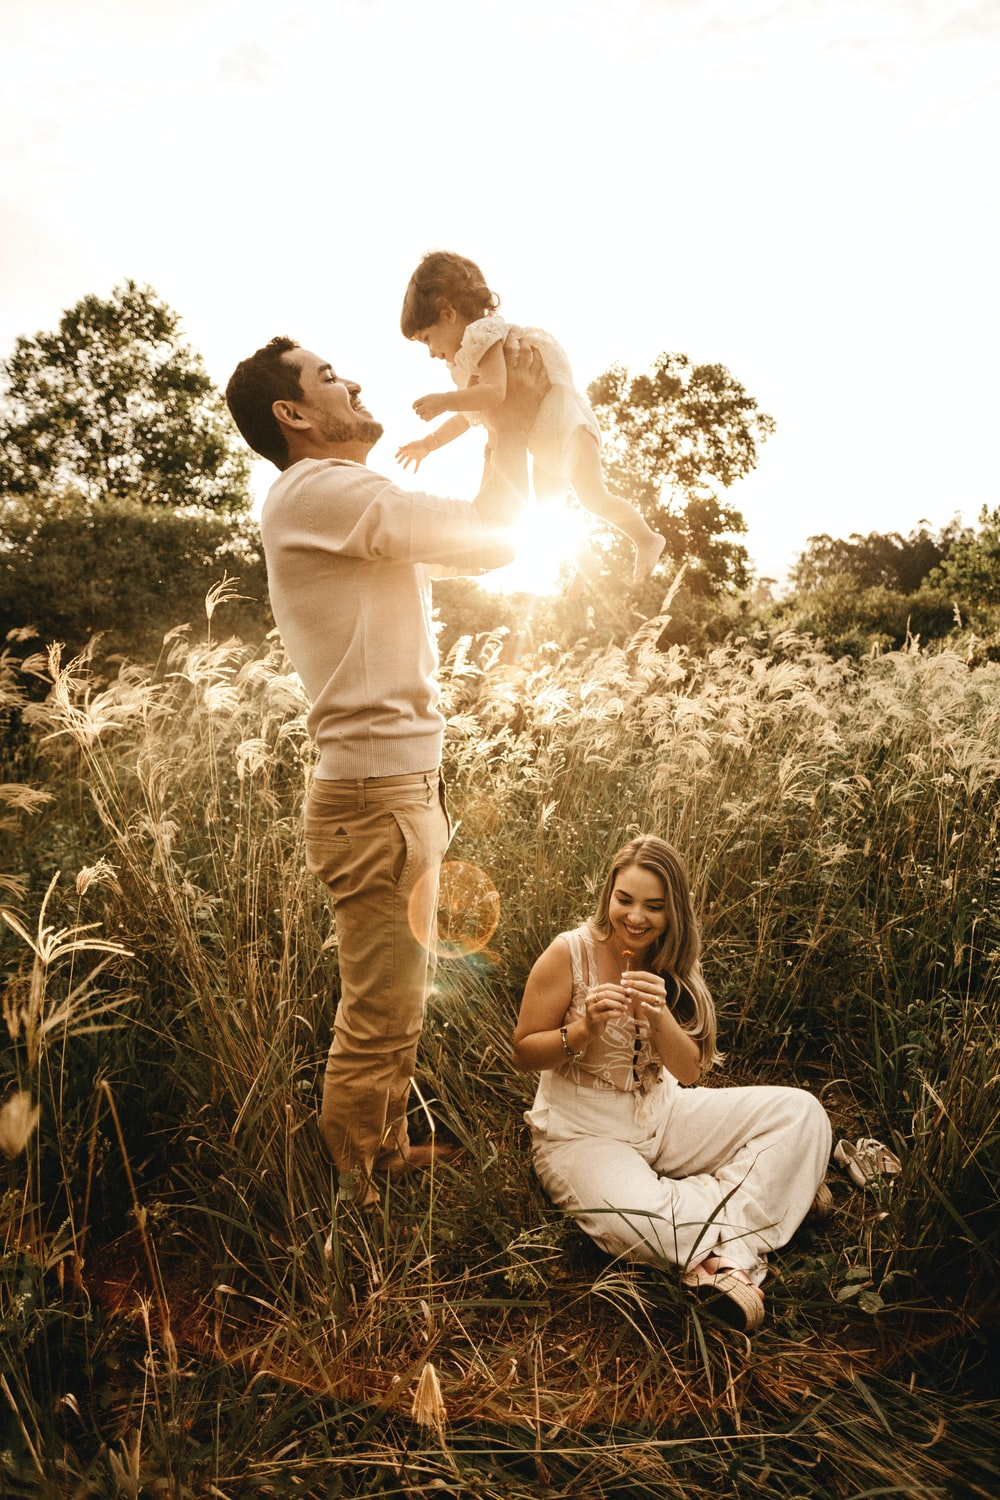 Image result for couple image love